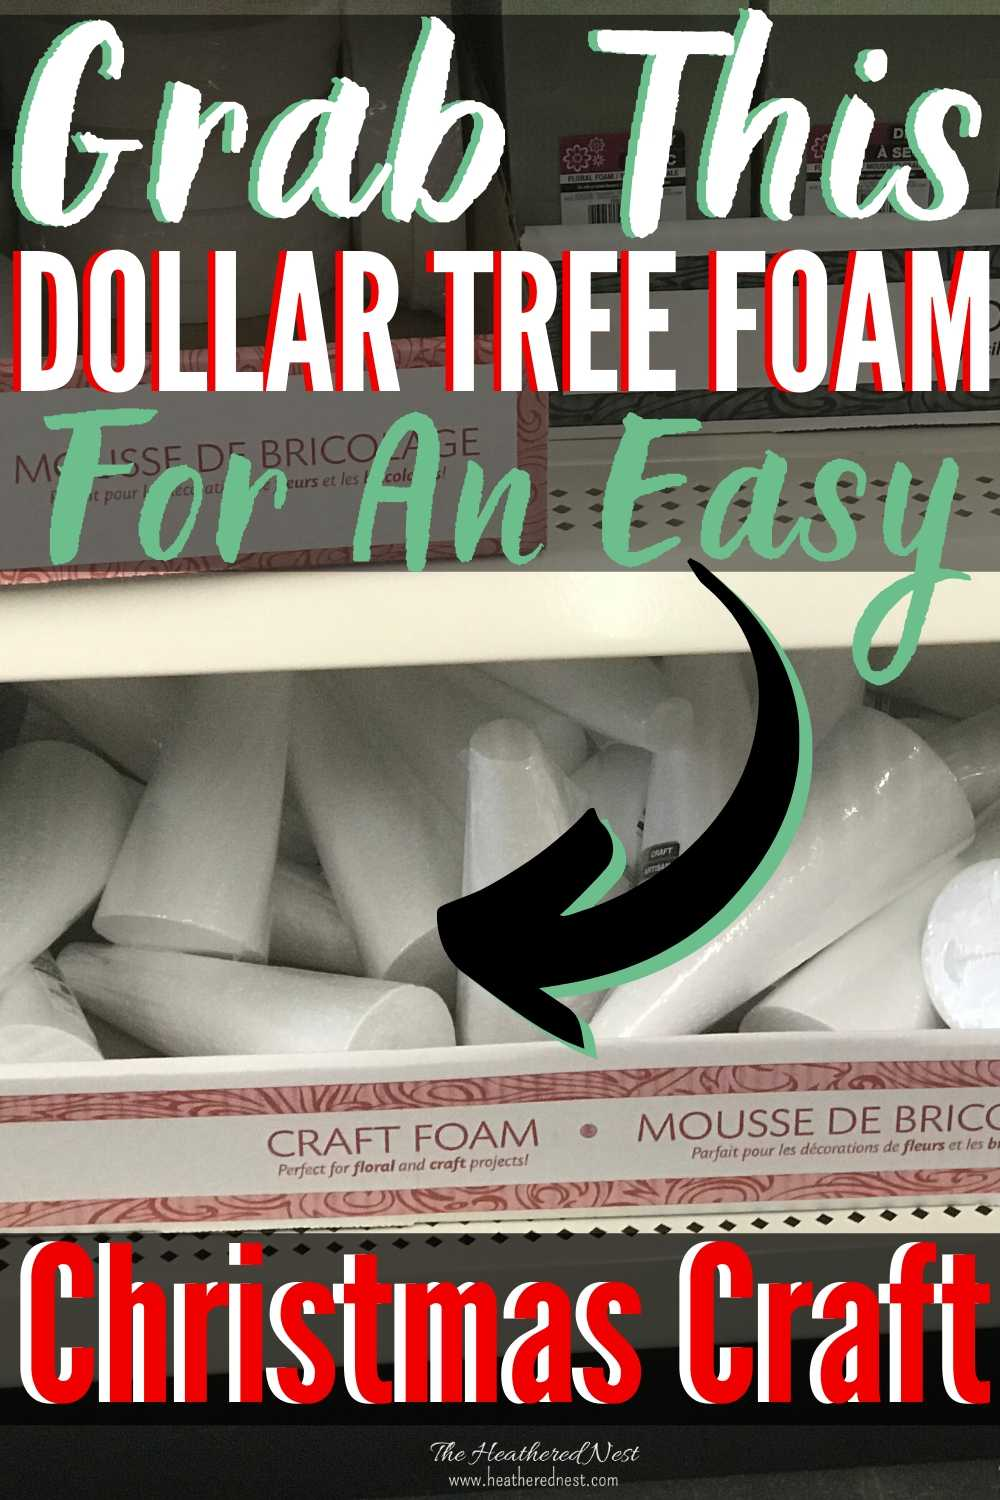 Make some fun Christmas Tree Crafts using items you can grab at the dollar store or dollar tree! Here's how...